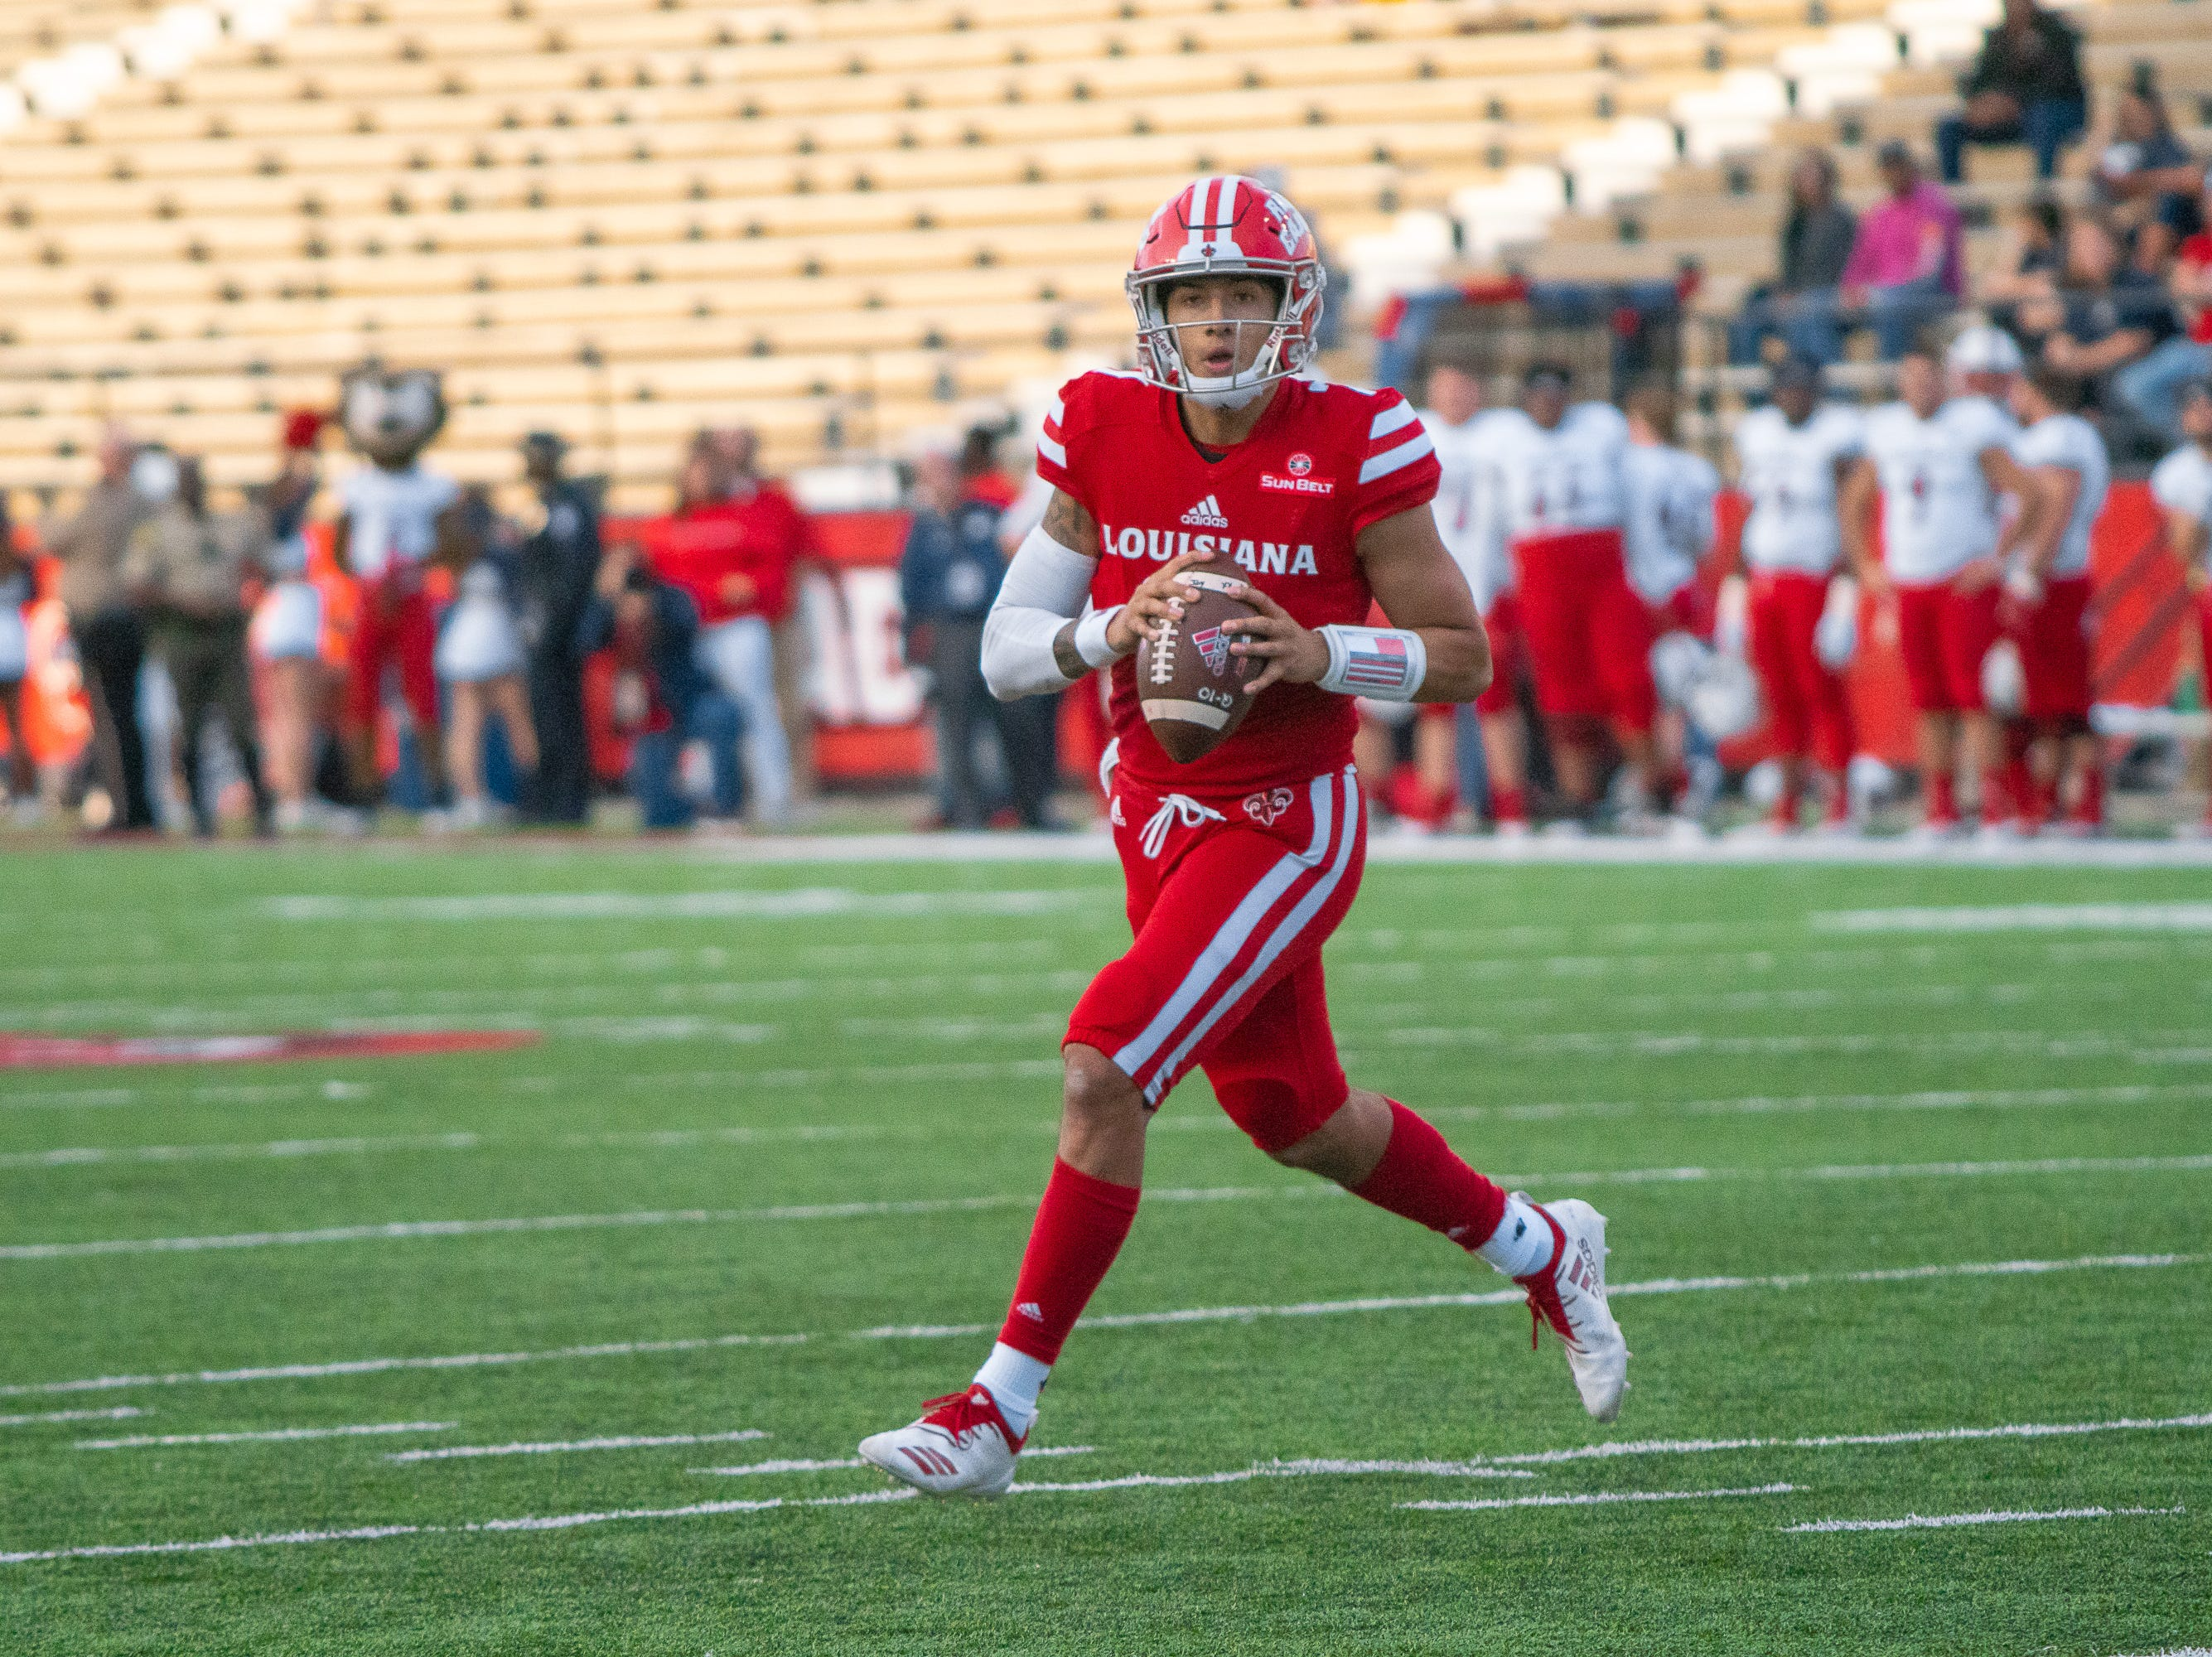 UL's senior quarterback Andre Nunez looks for an open pass during the play as the Ragin' Cajuns play against the South Alabama Jaguars at Cajun Field on November 17, 2018.